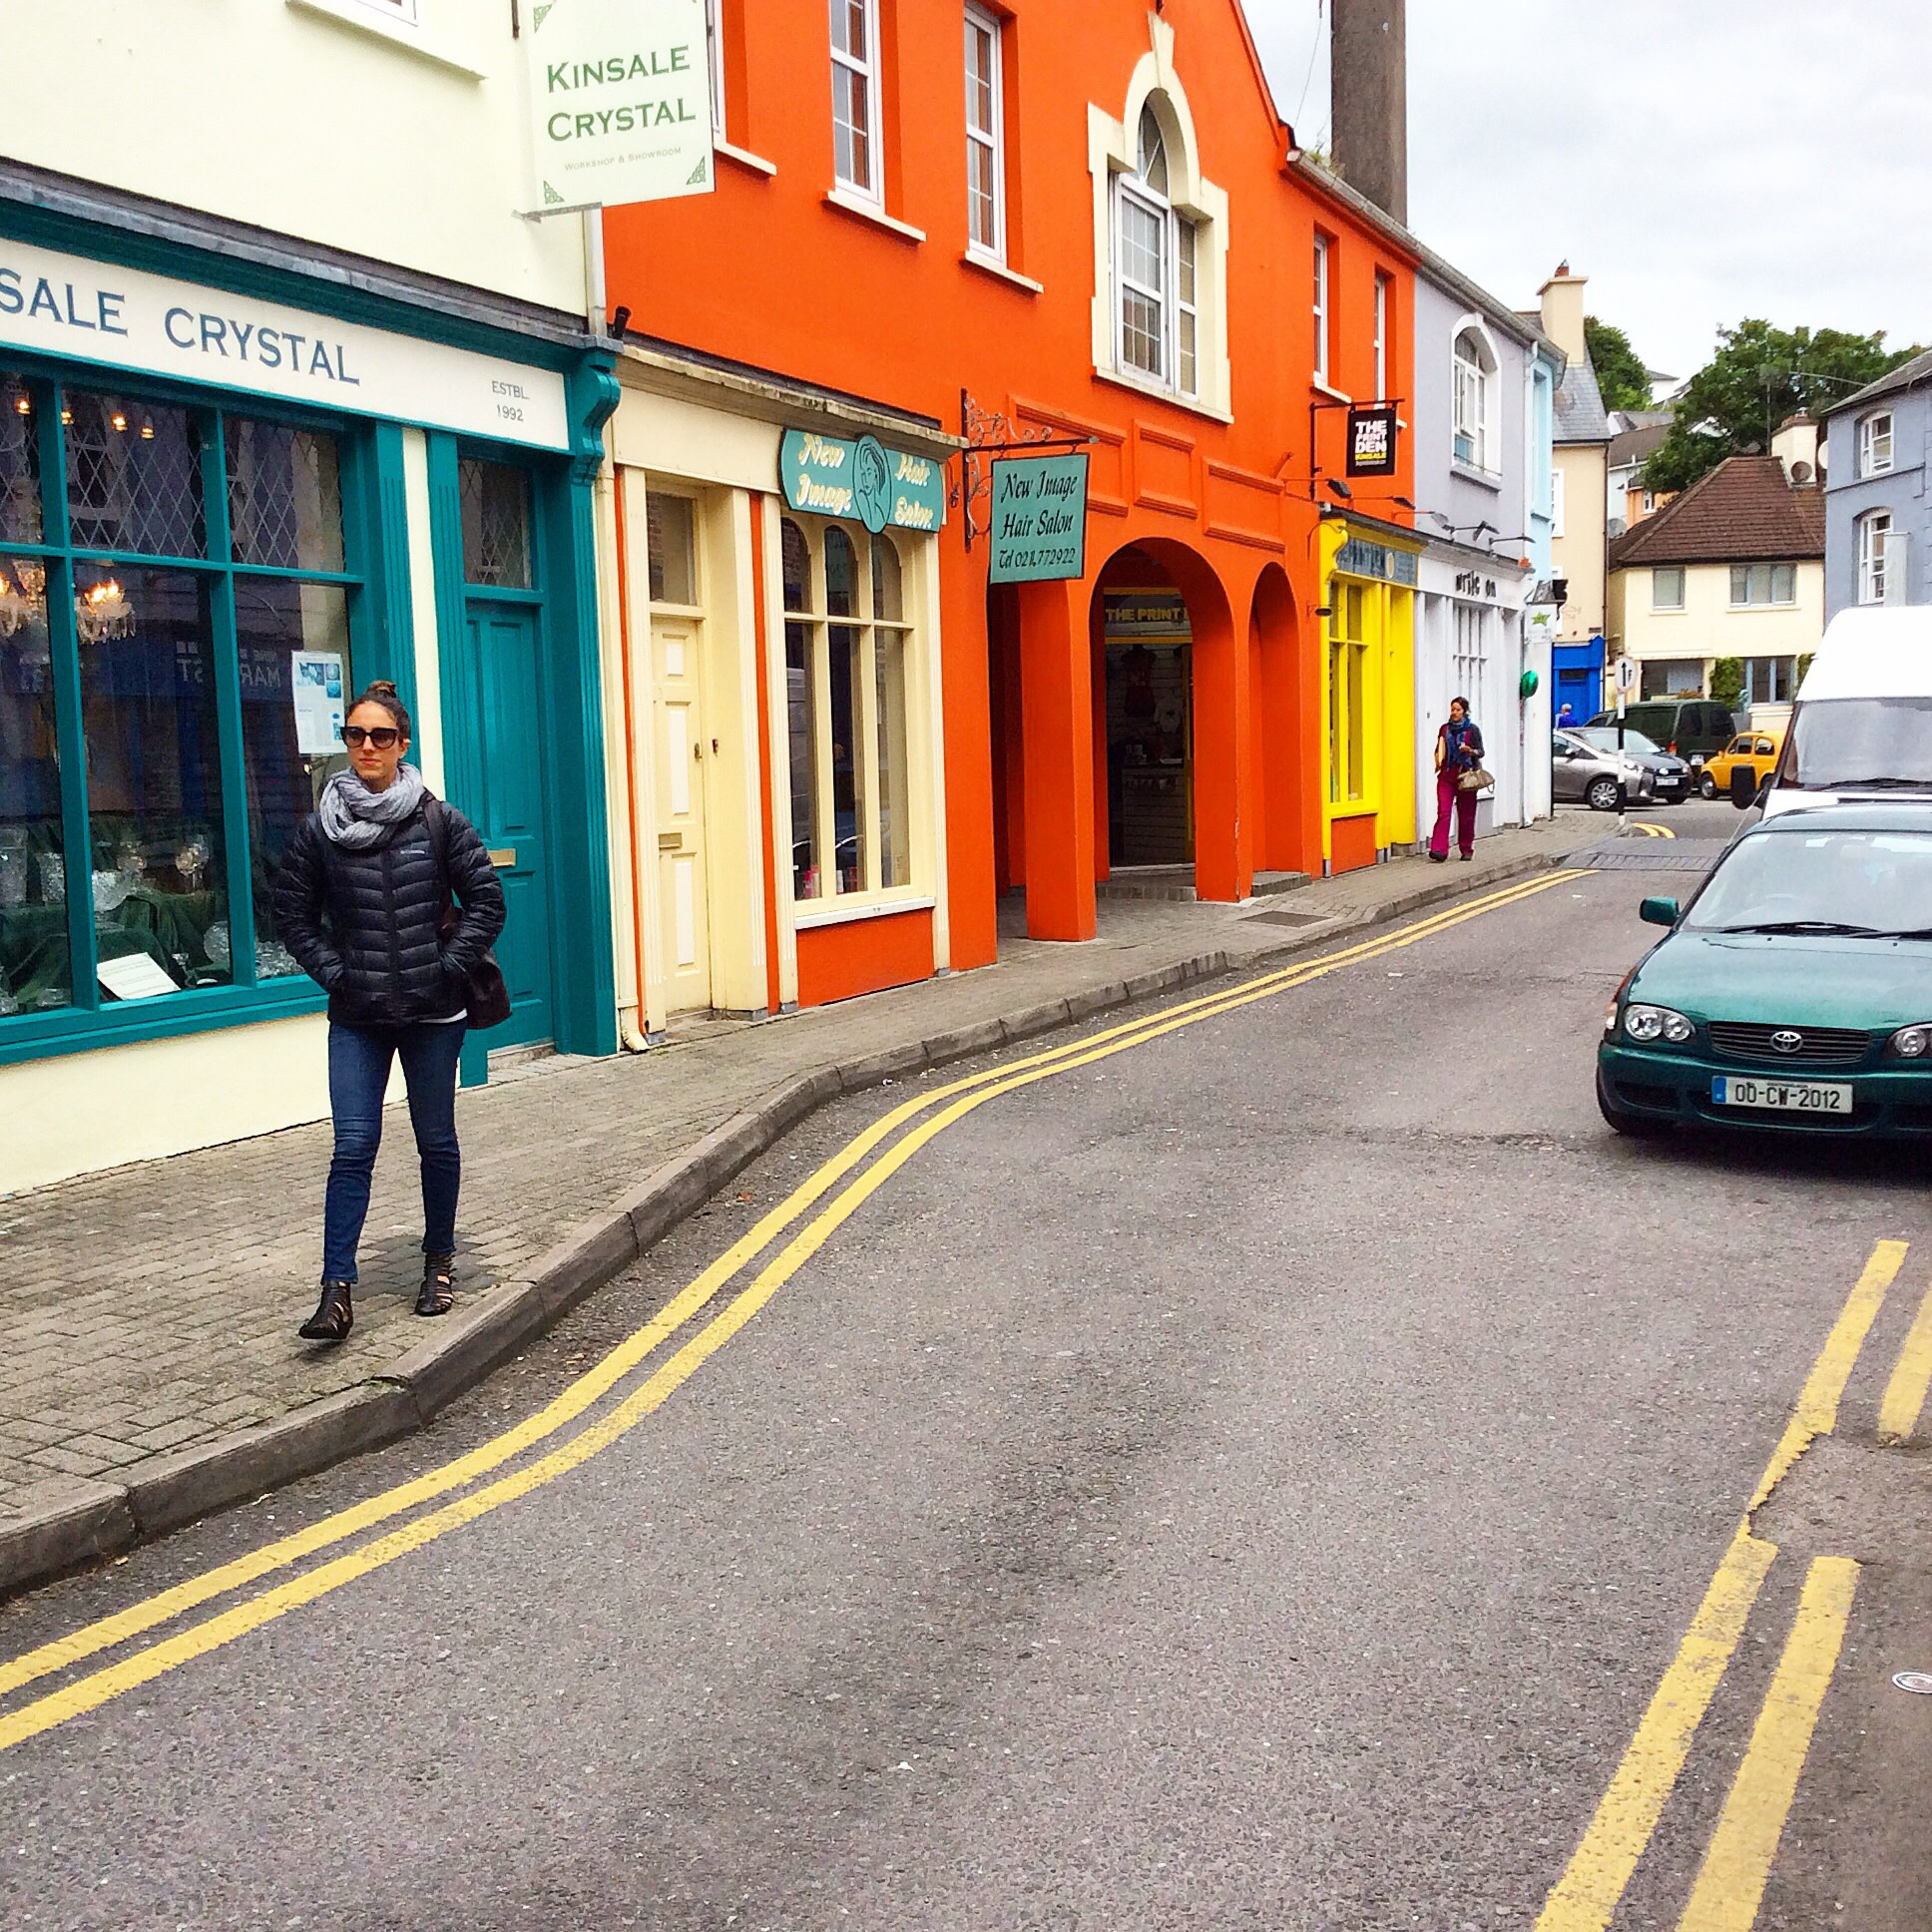 Walking Kinsale.